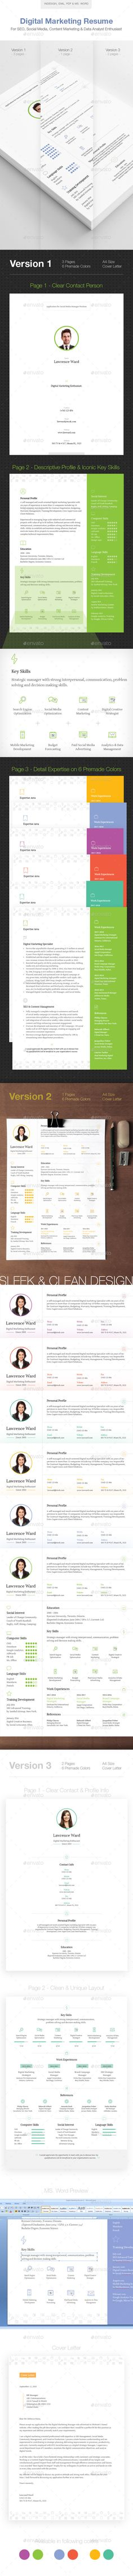 clean resume template indesign indd download here http